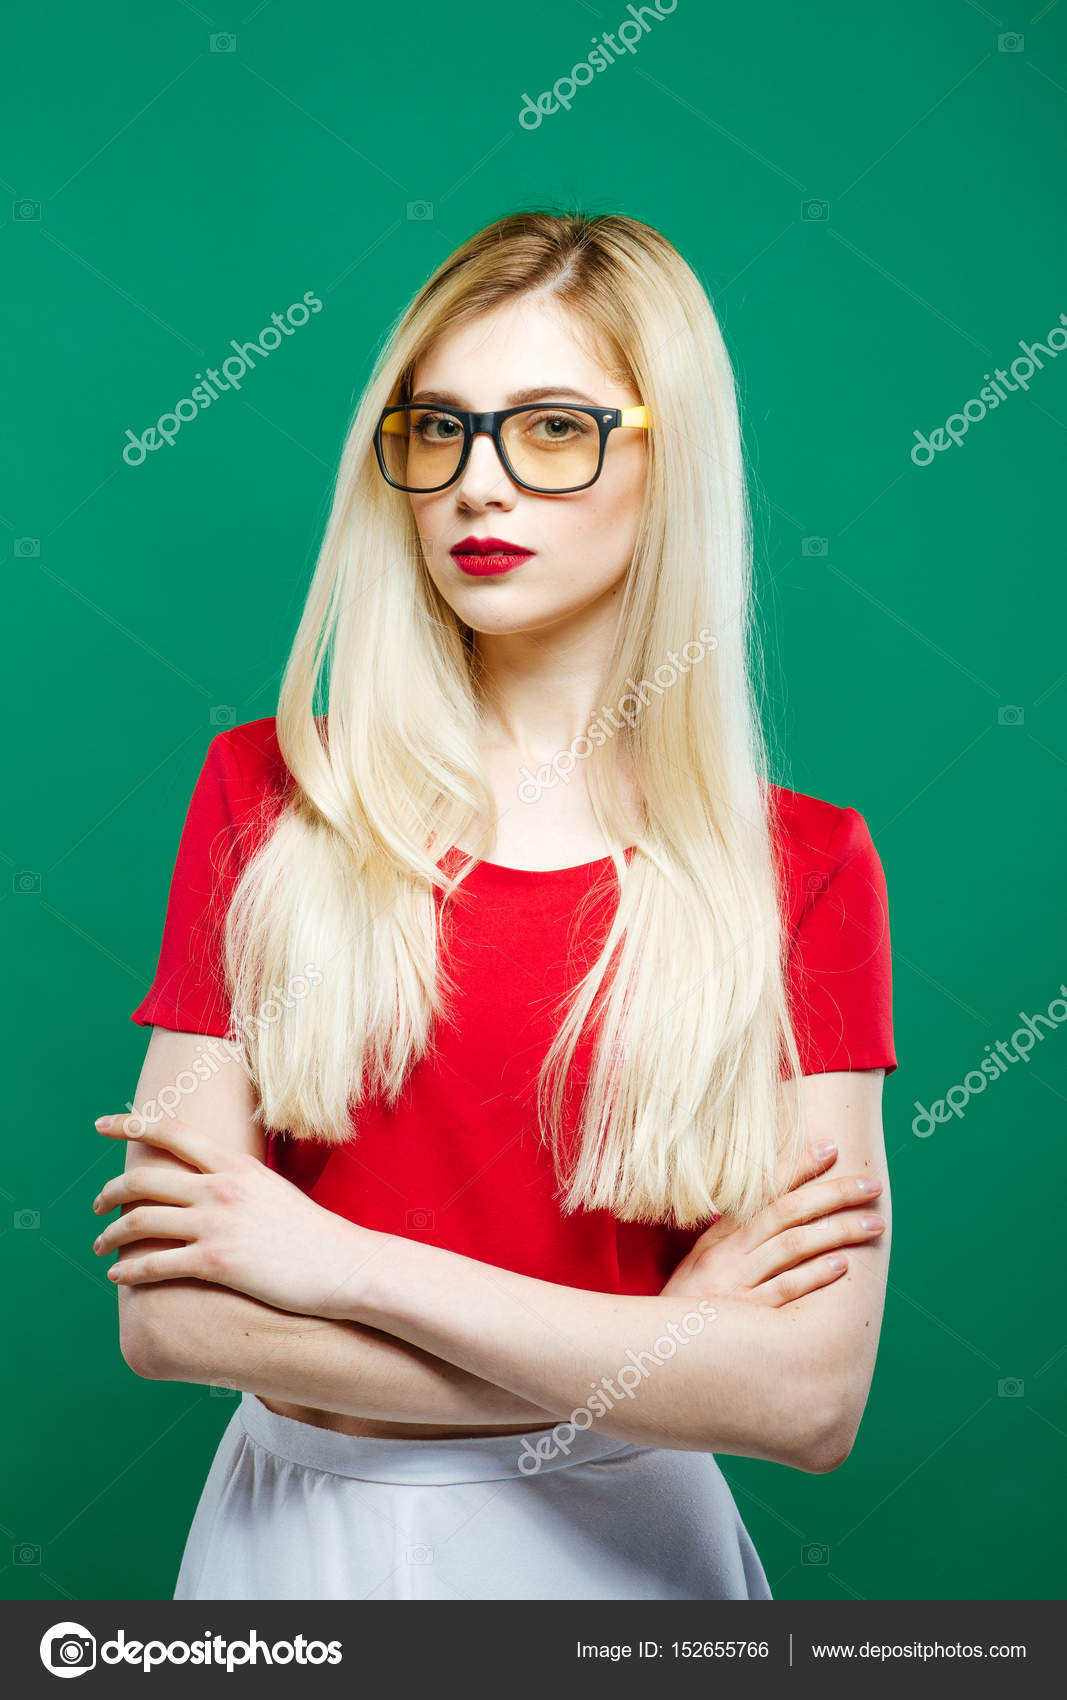 ee3bf4704 Seriuos Girl Wearing Eyeglasses, Red Top and White Skirt on Green  Background. Portrait of Young Woman with Sensual Lips and Long Hair in  Studio.